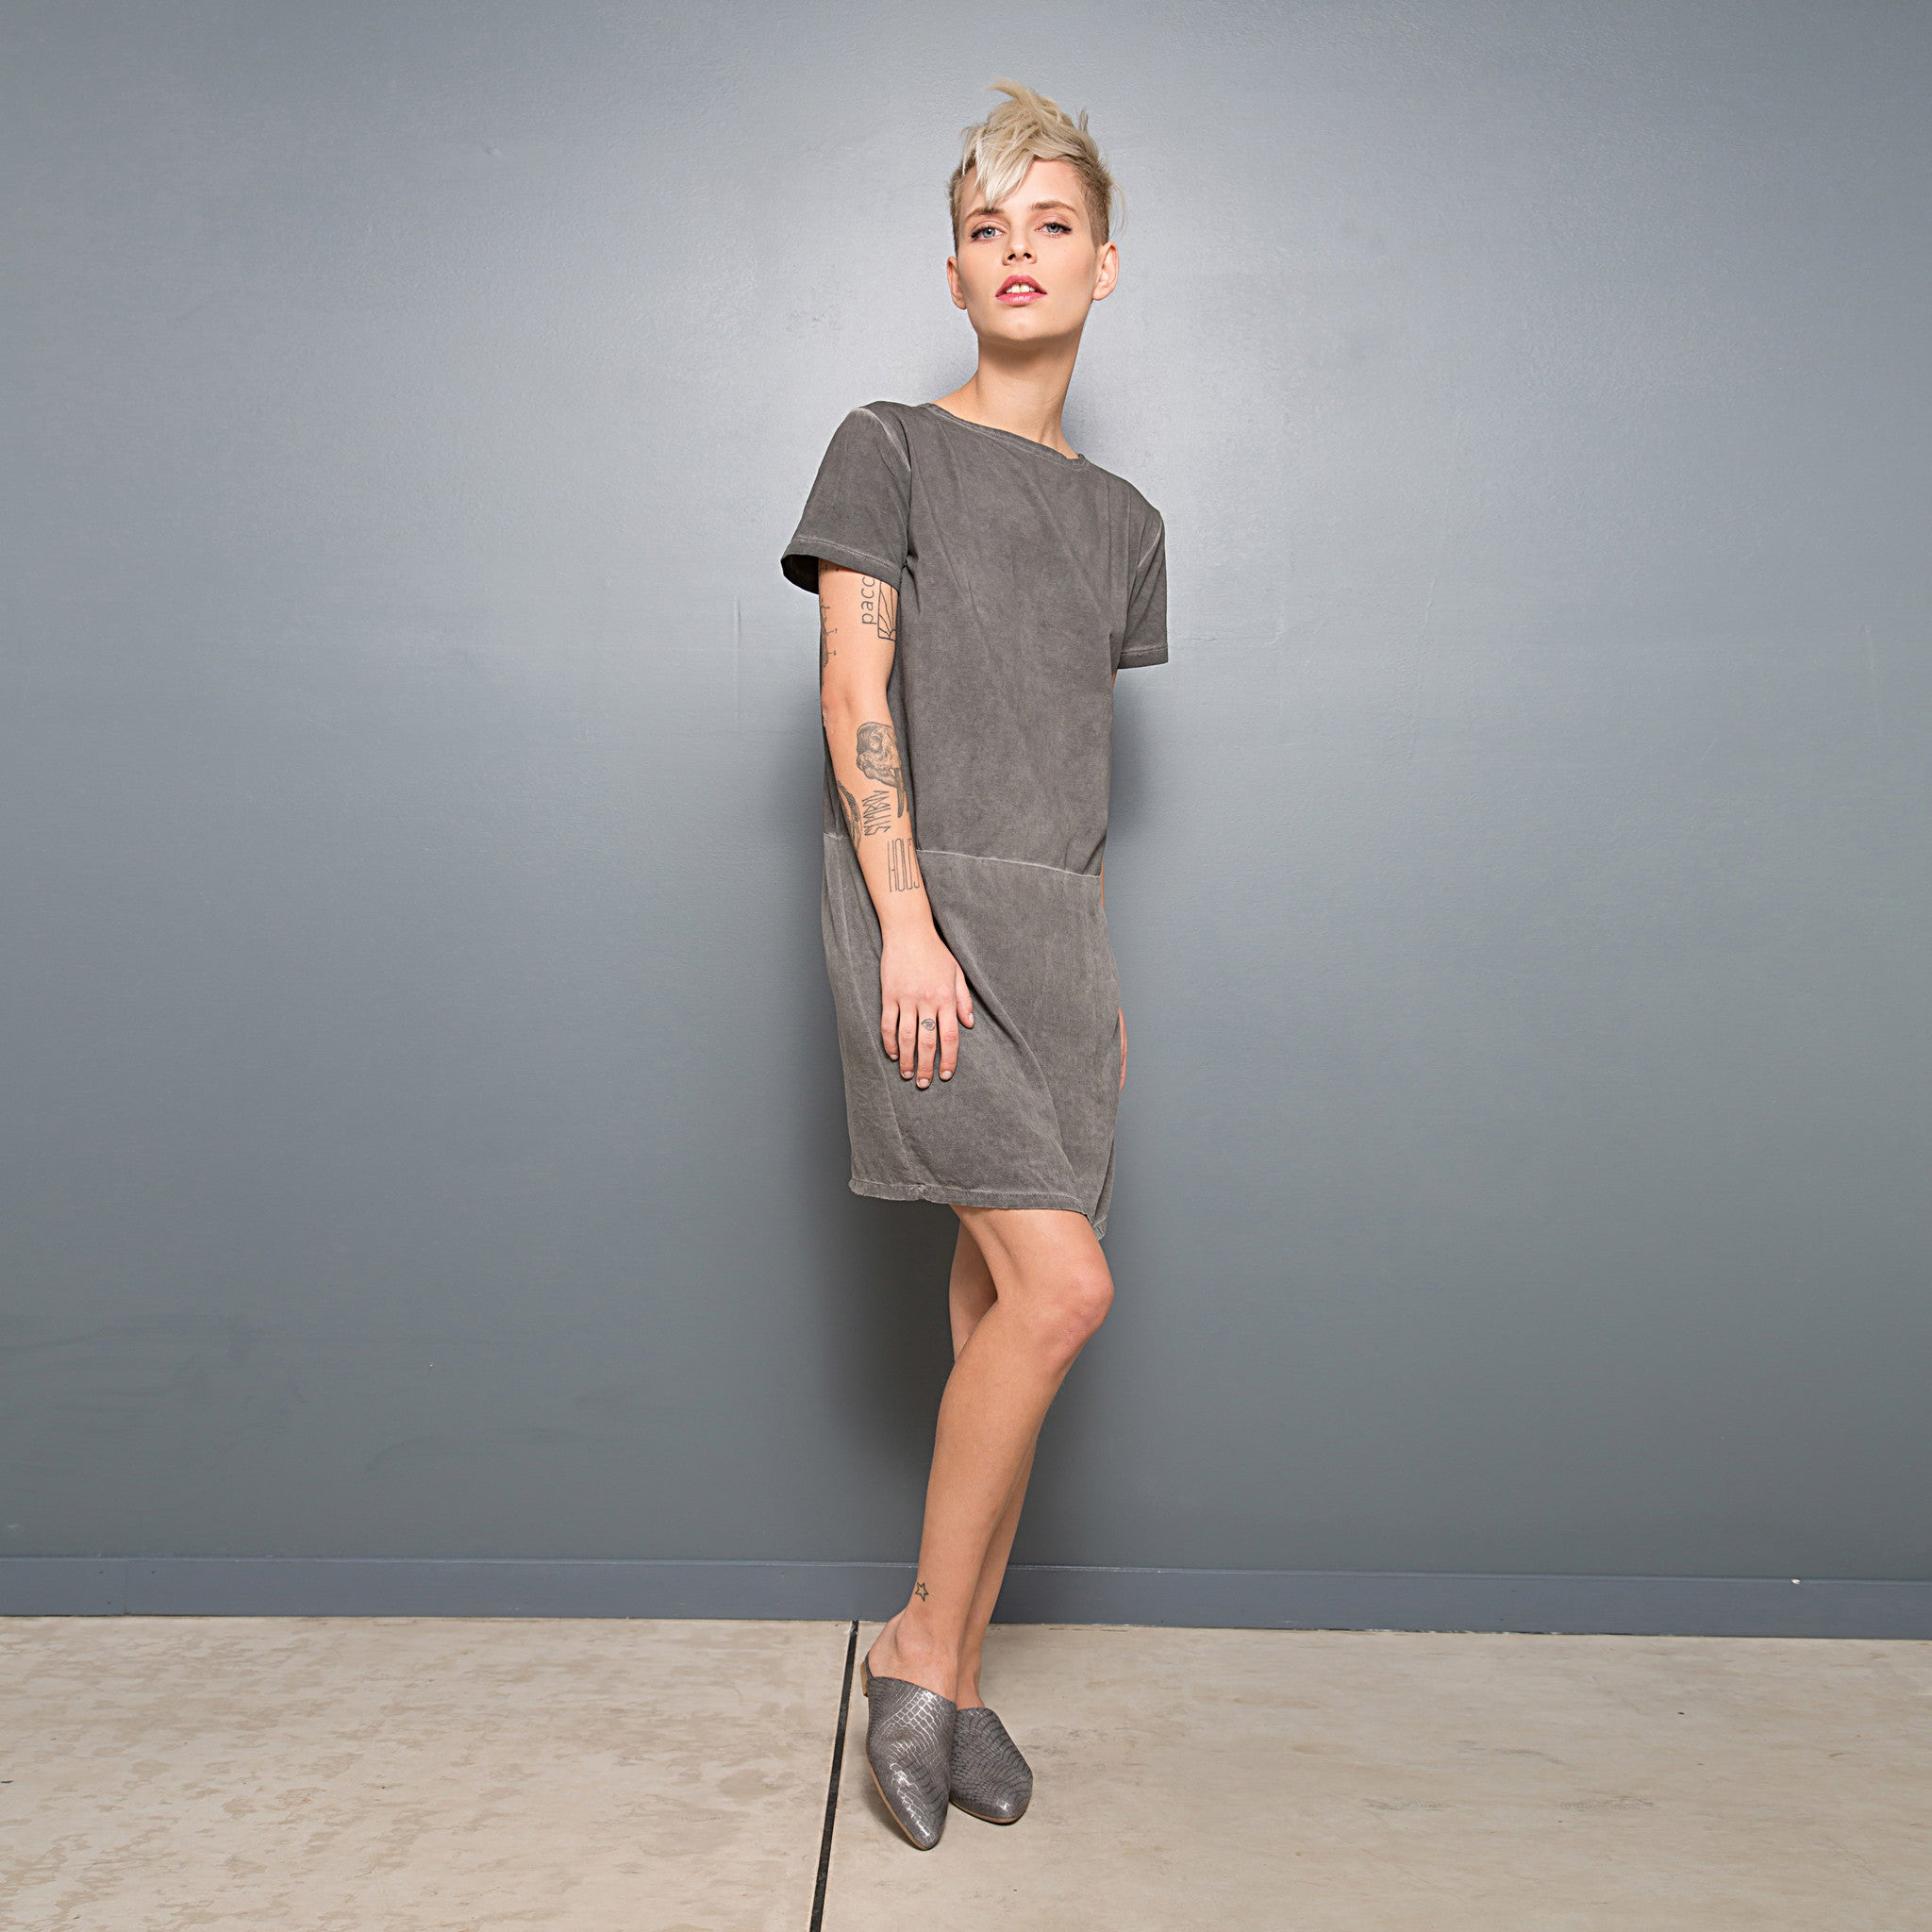 Half jersey half viscose summer T-shirt dress - DuendeFashion  - 6